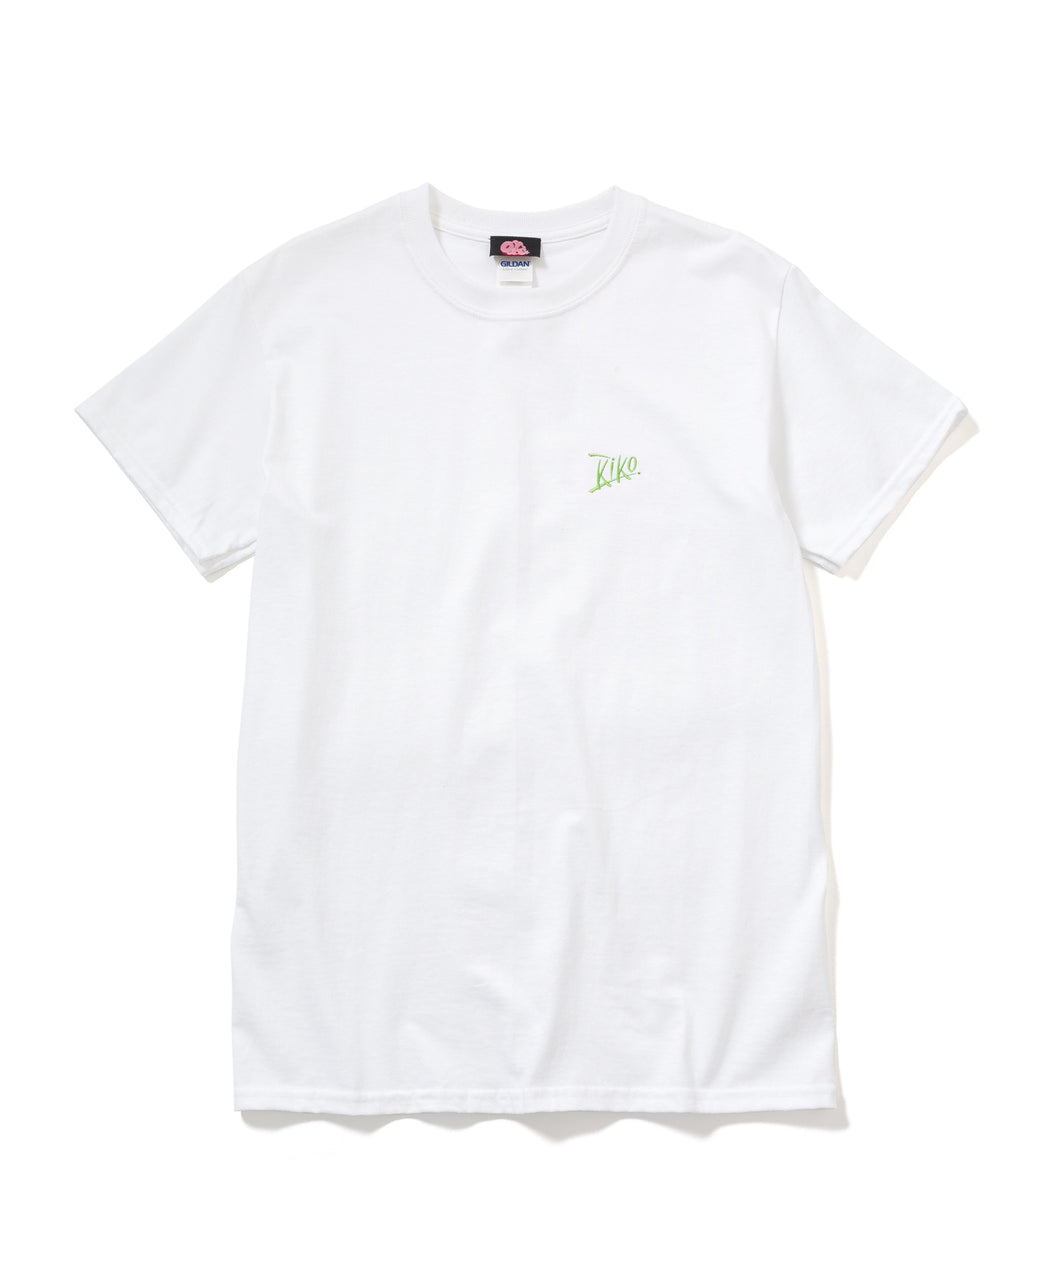 Embroidery S/S T-shirt (White)